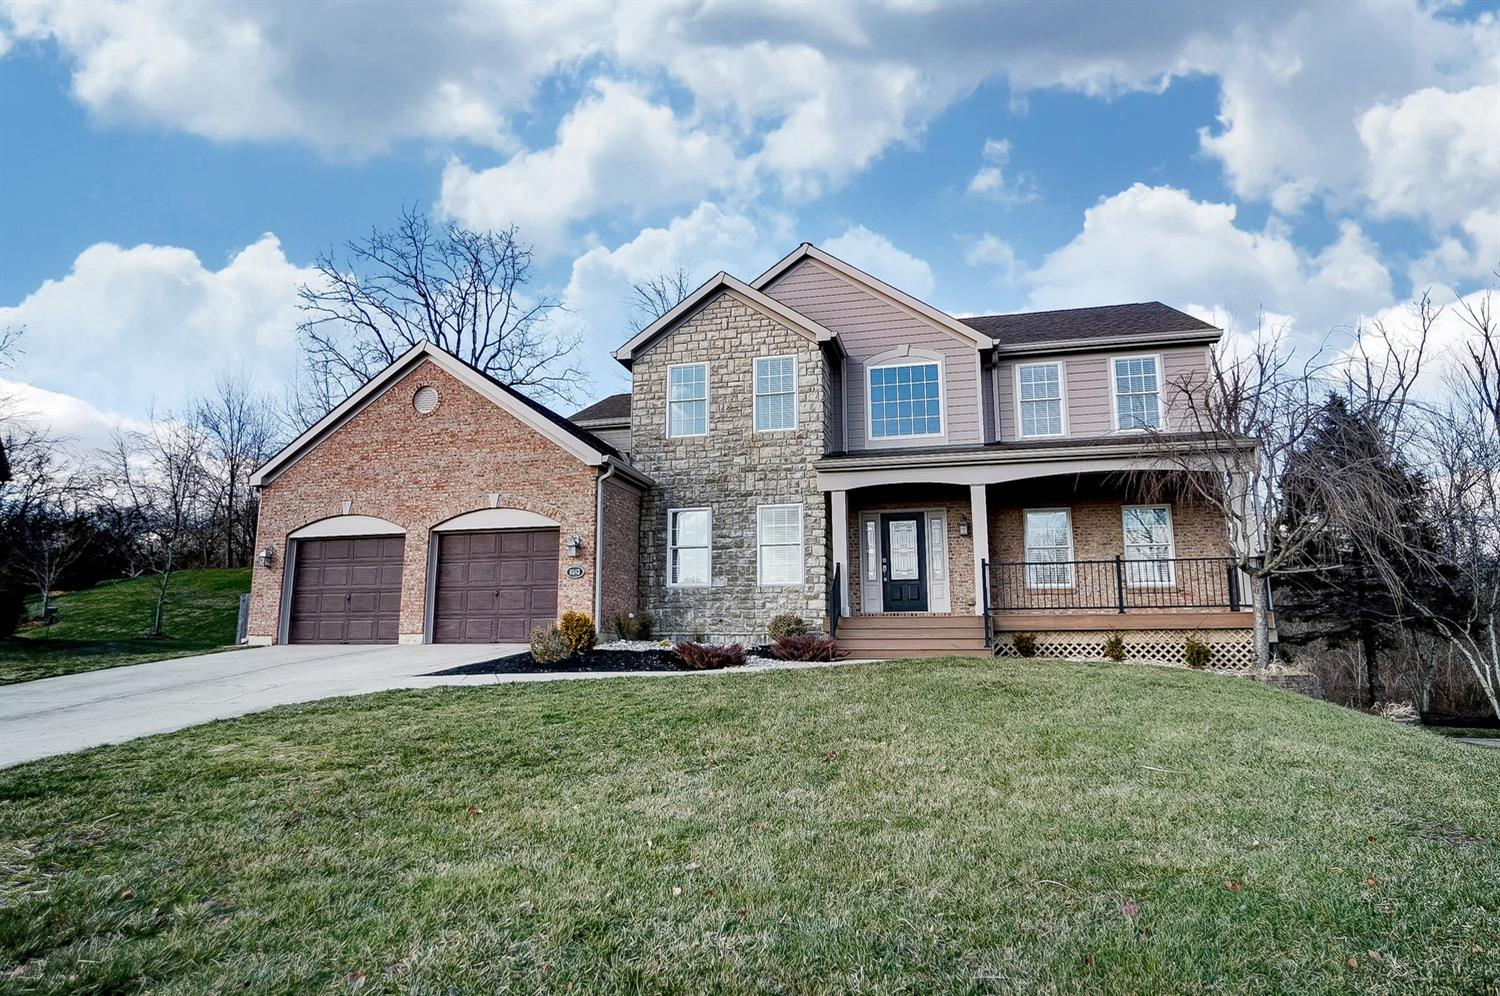 Property for sale at 8583 Kates Way, West Chester,  Ohio 45069